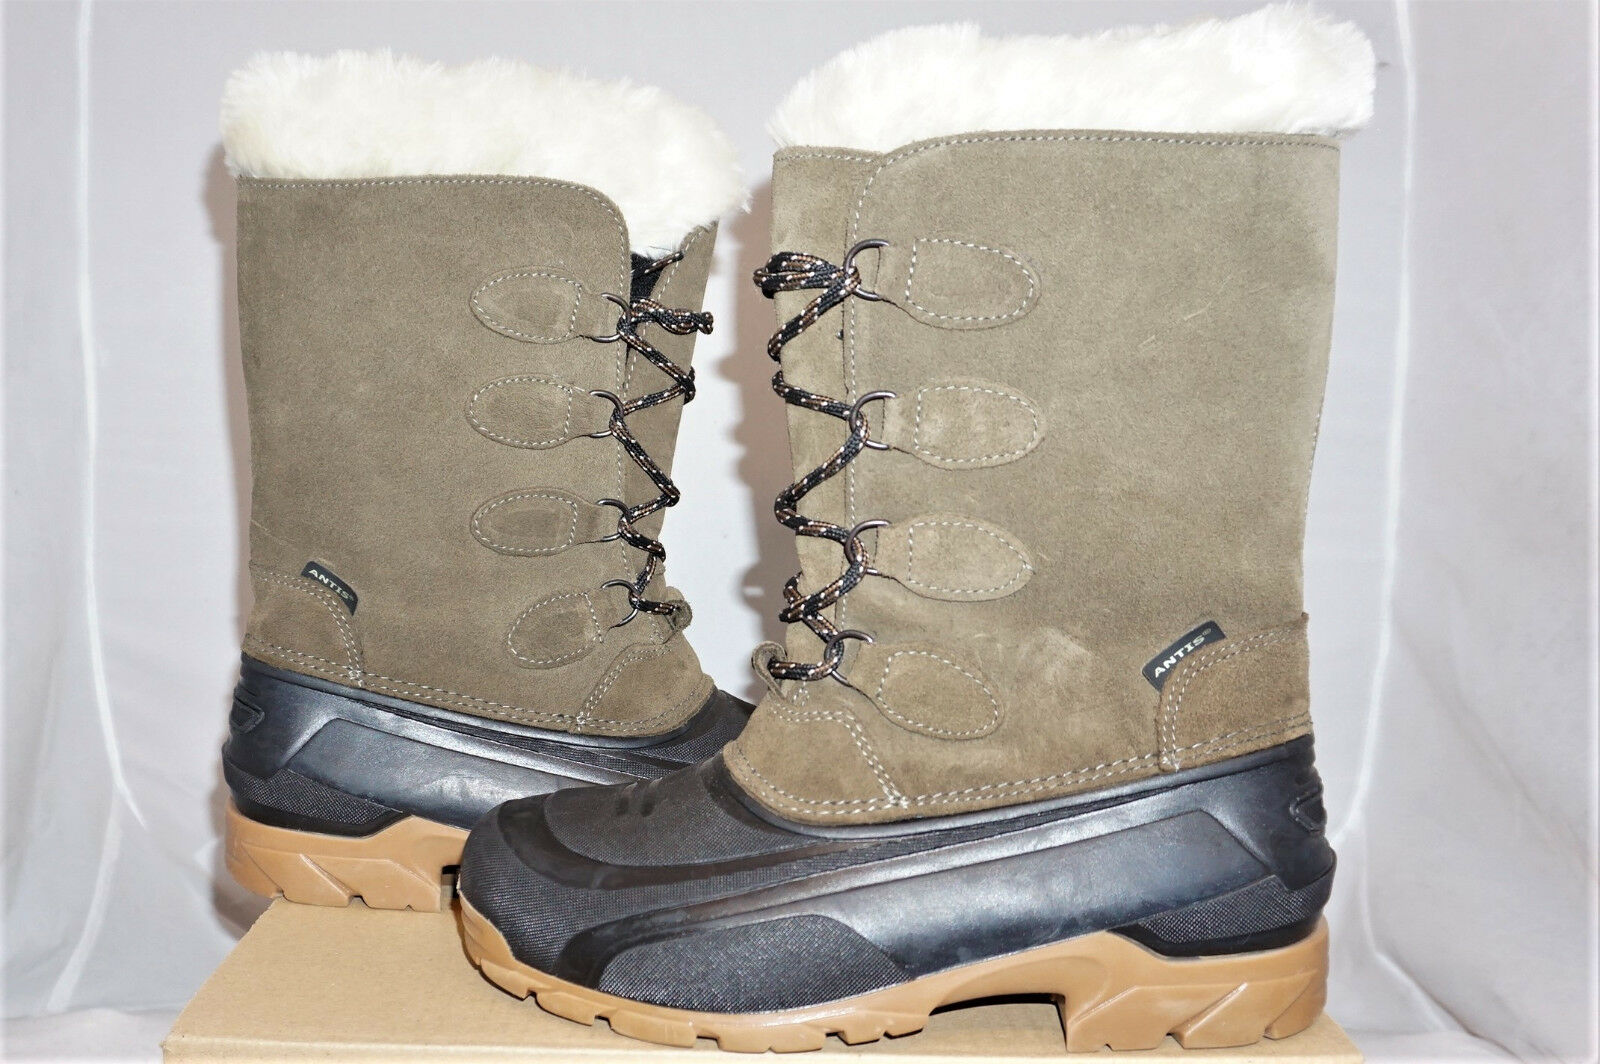 ANTIS Iceland High   38 Boots shoes Leather Winter Boots NEW   online sale